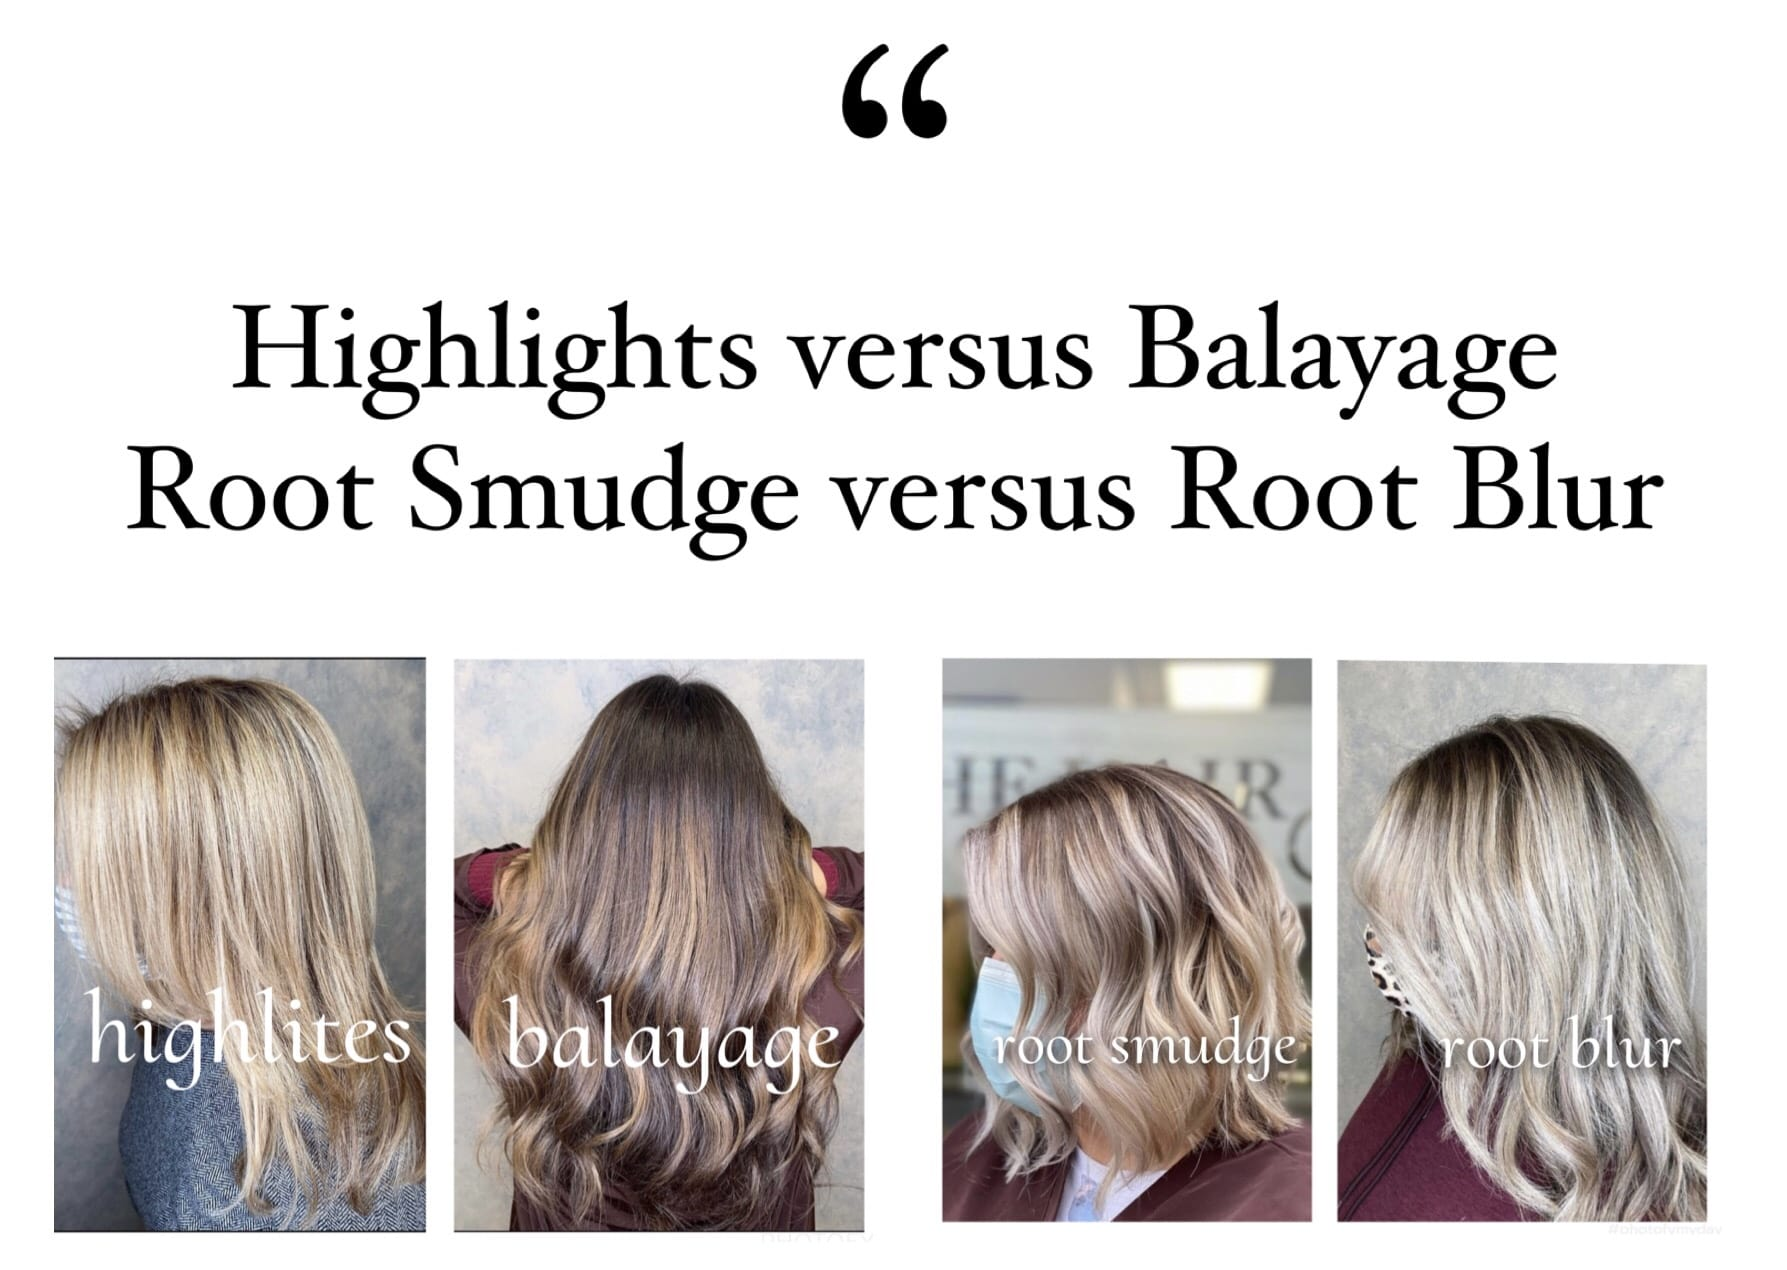 Highlights versus Balayage Root Smudge versus Root Blur and images of each technique